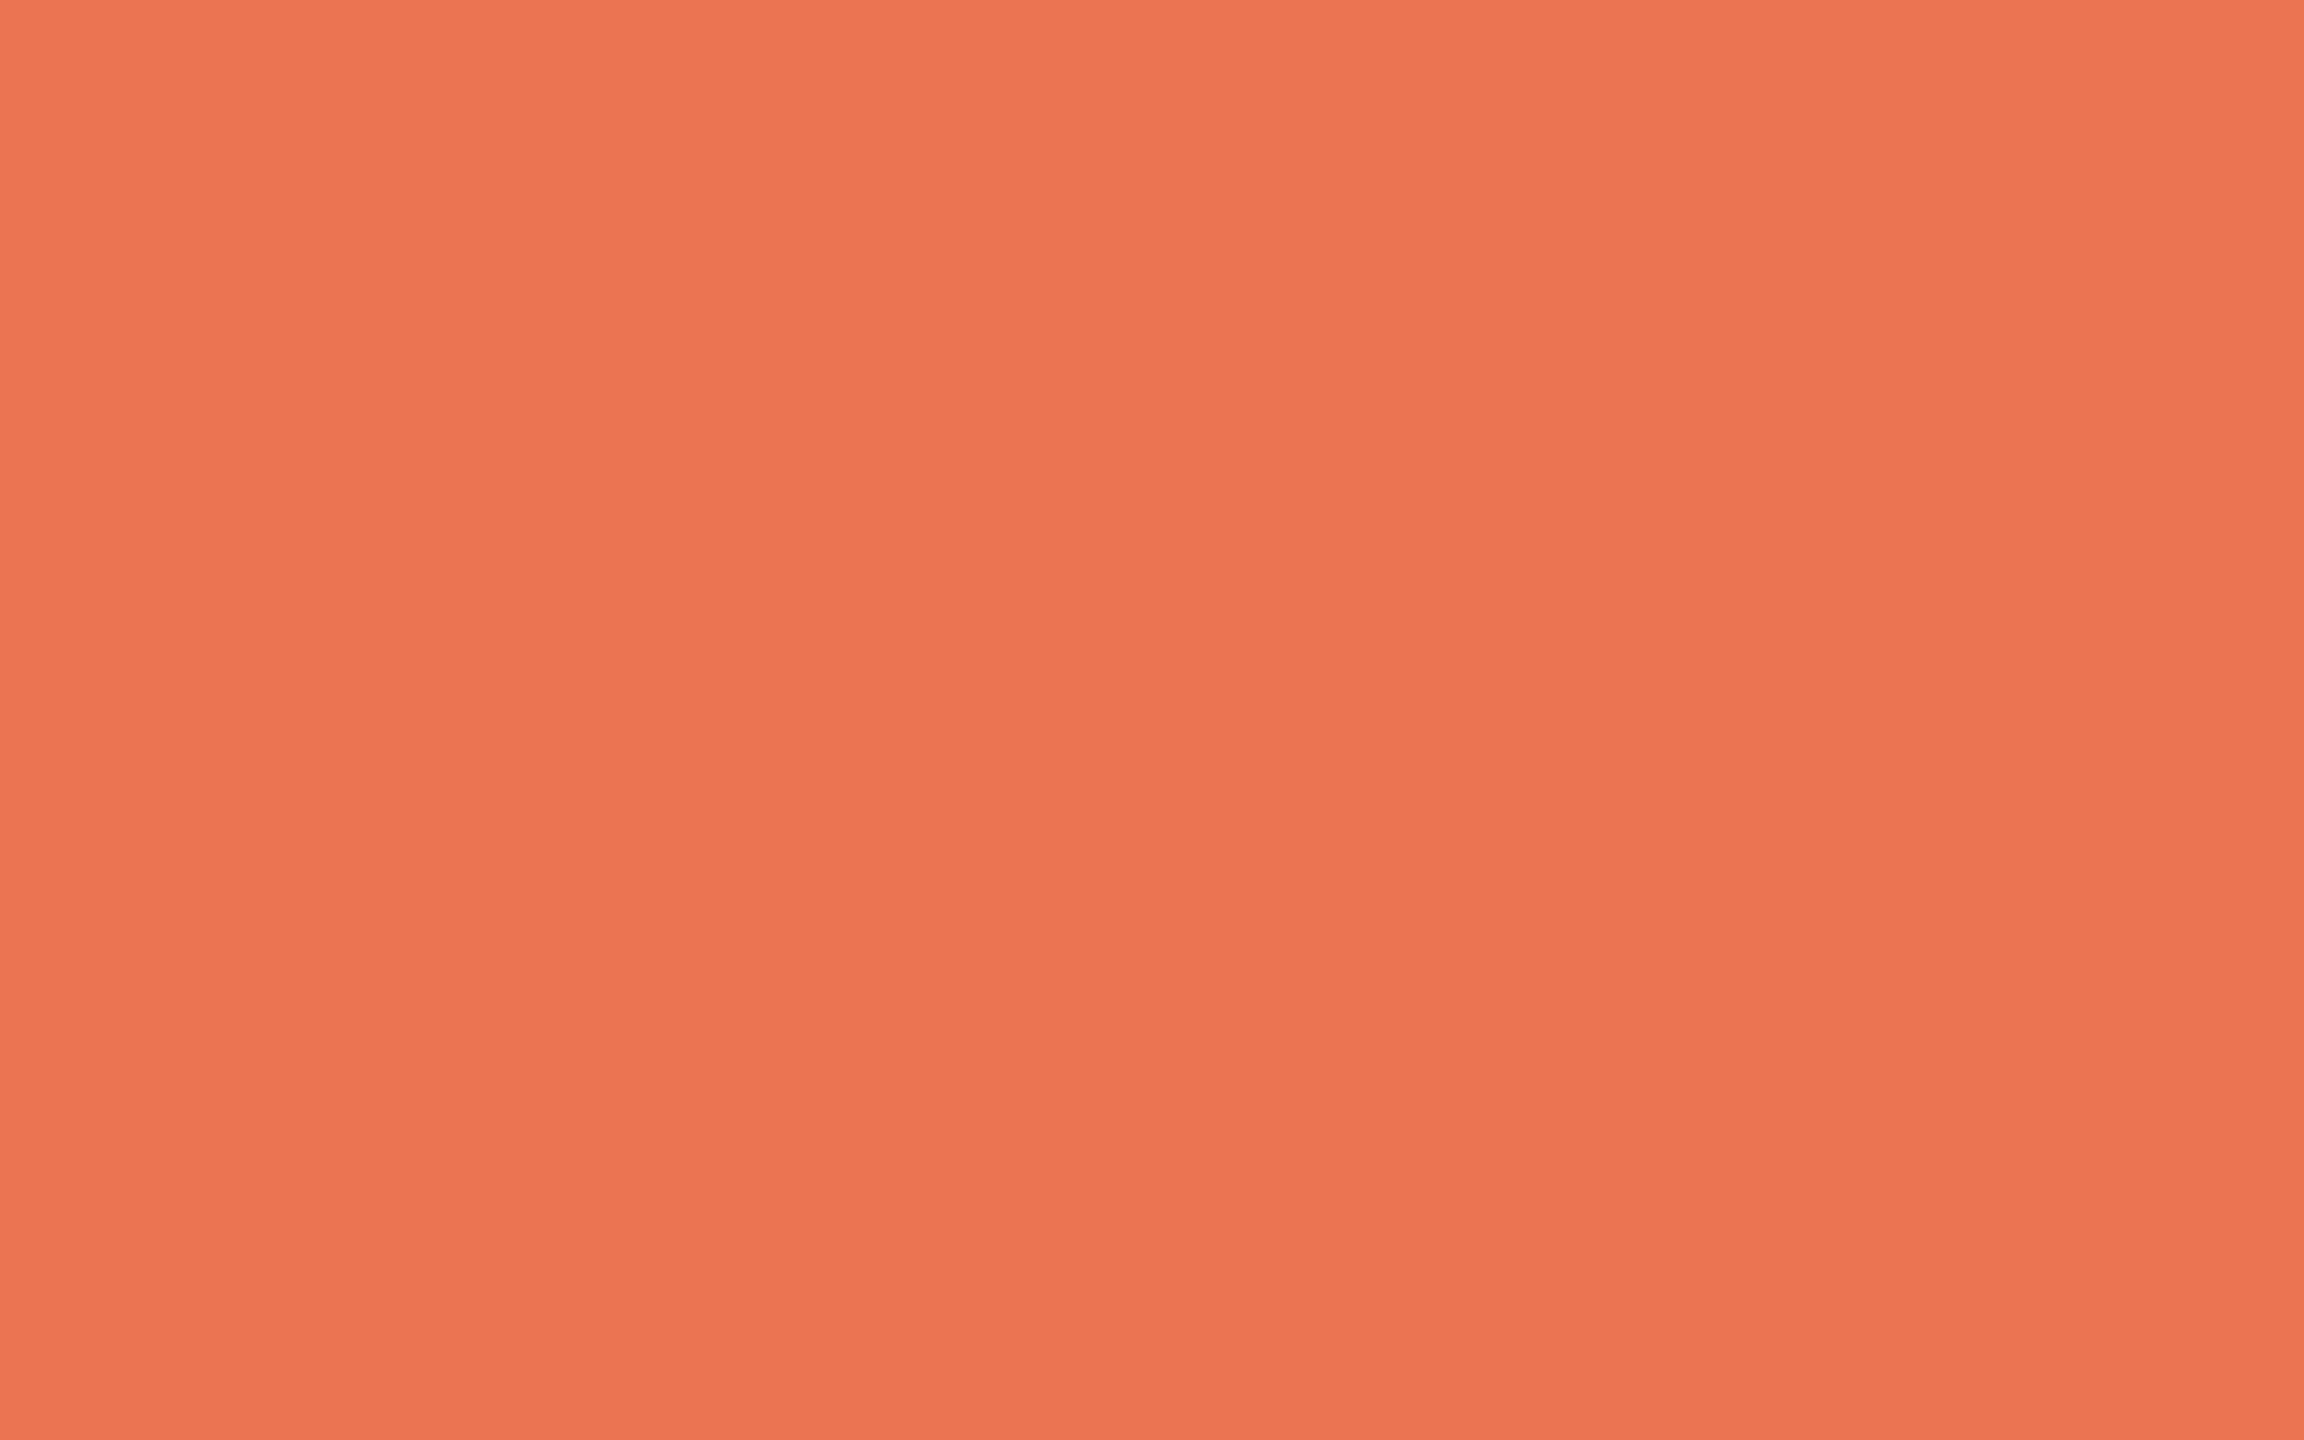 2304x1440 Burnt Sienna Solid Color Background